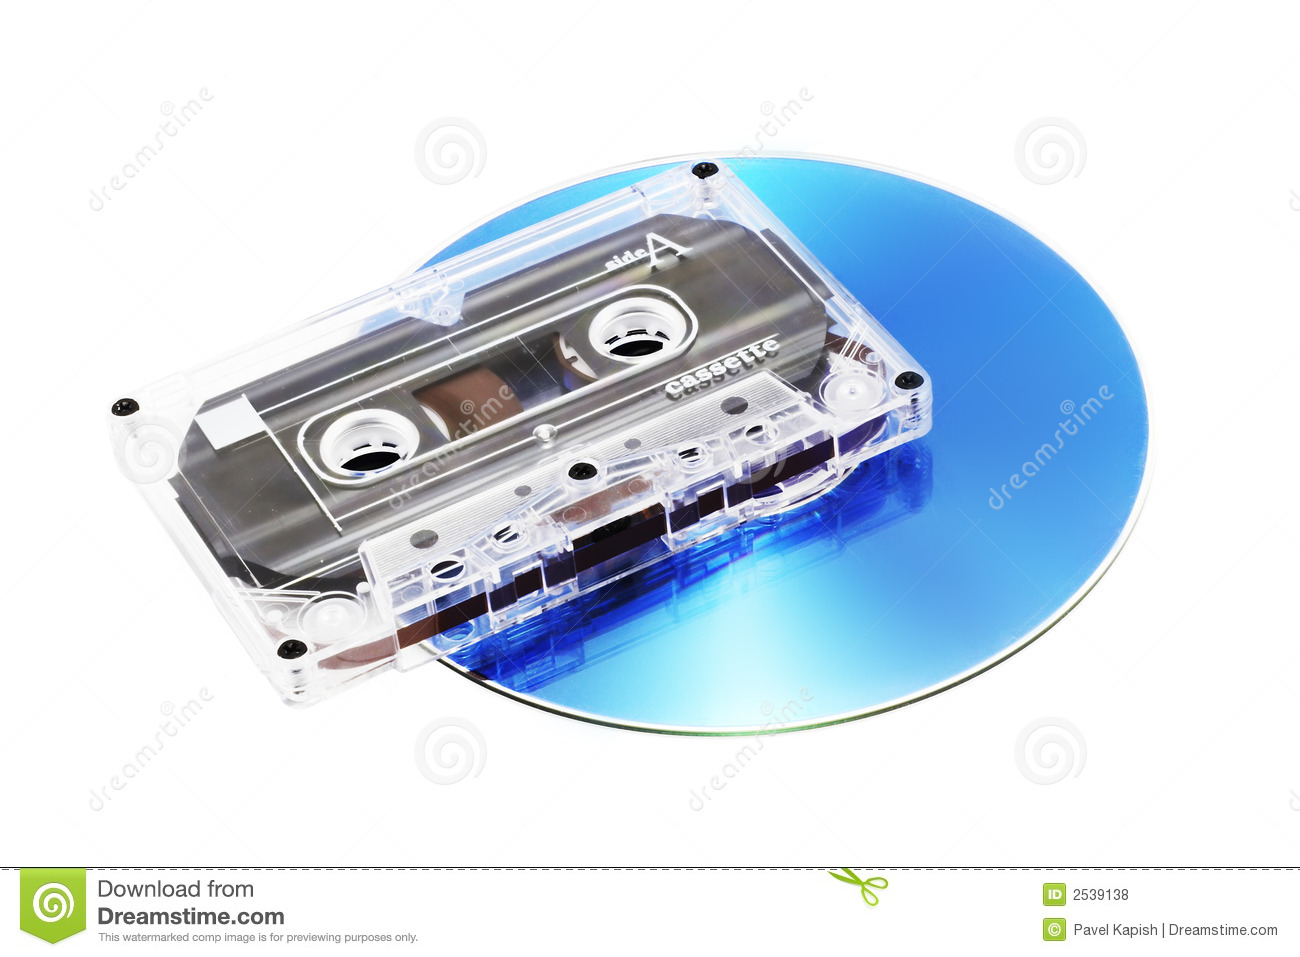 cassettes tapes vs compact discs No cassette deck could keep full bandwidth to 15–20khz at 0db recording levels  luckily very little high frequency content is at any level over -20db or so, so it.